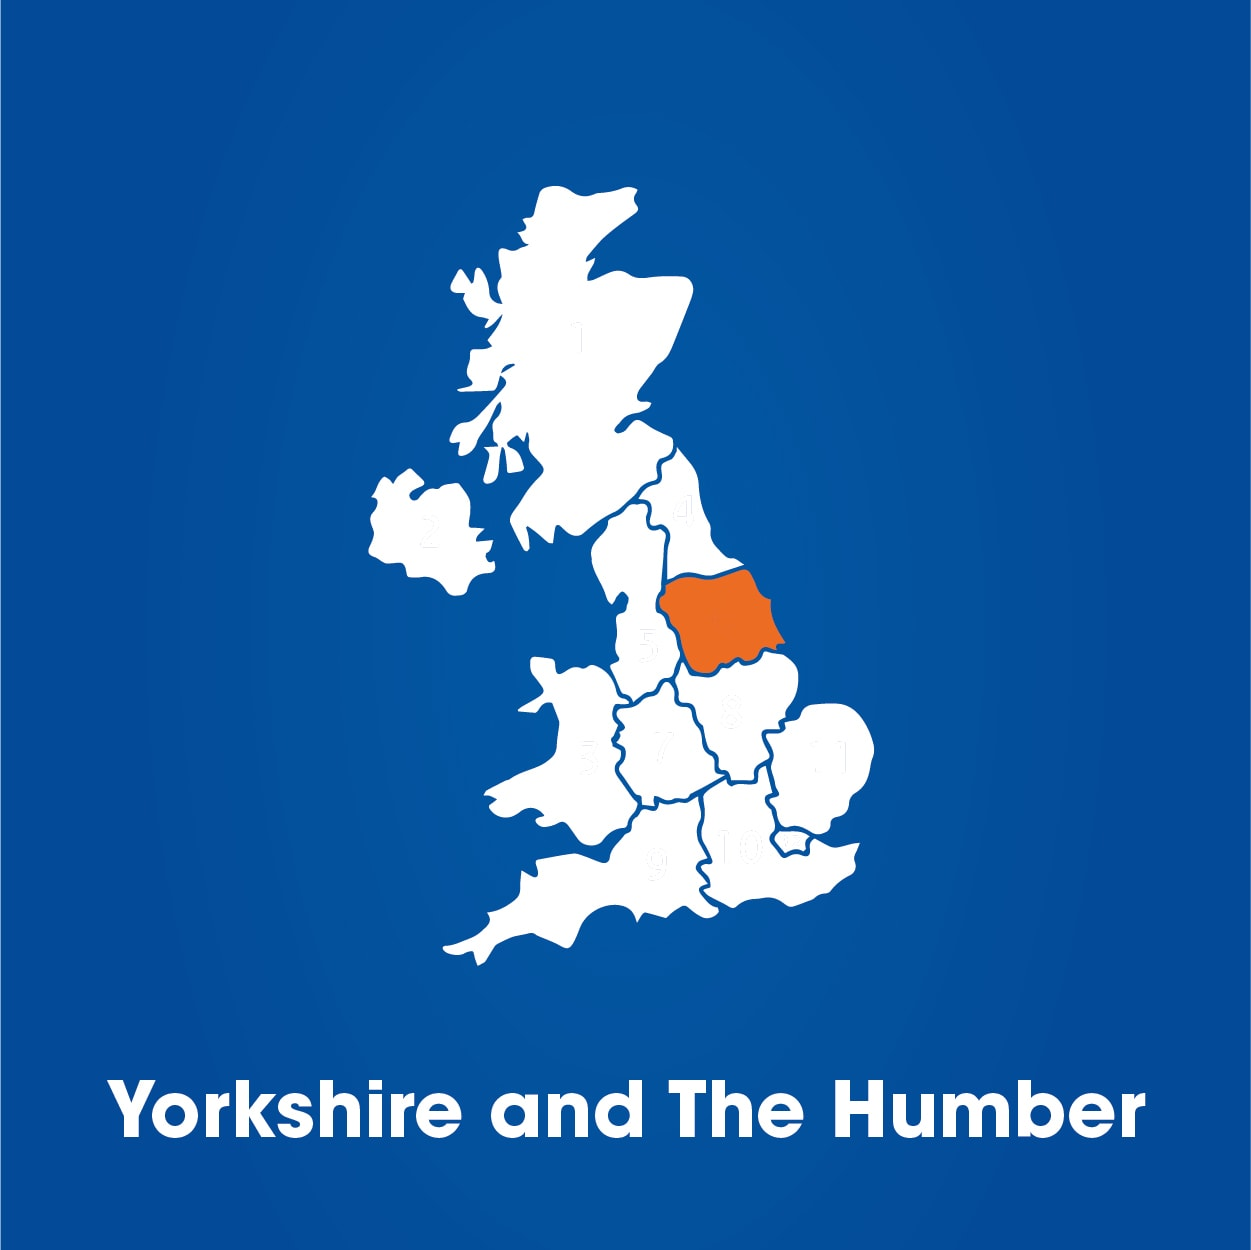 yorkshire and the humber on UK map